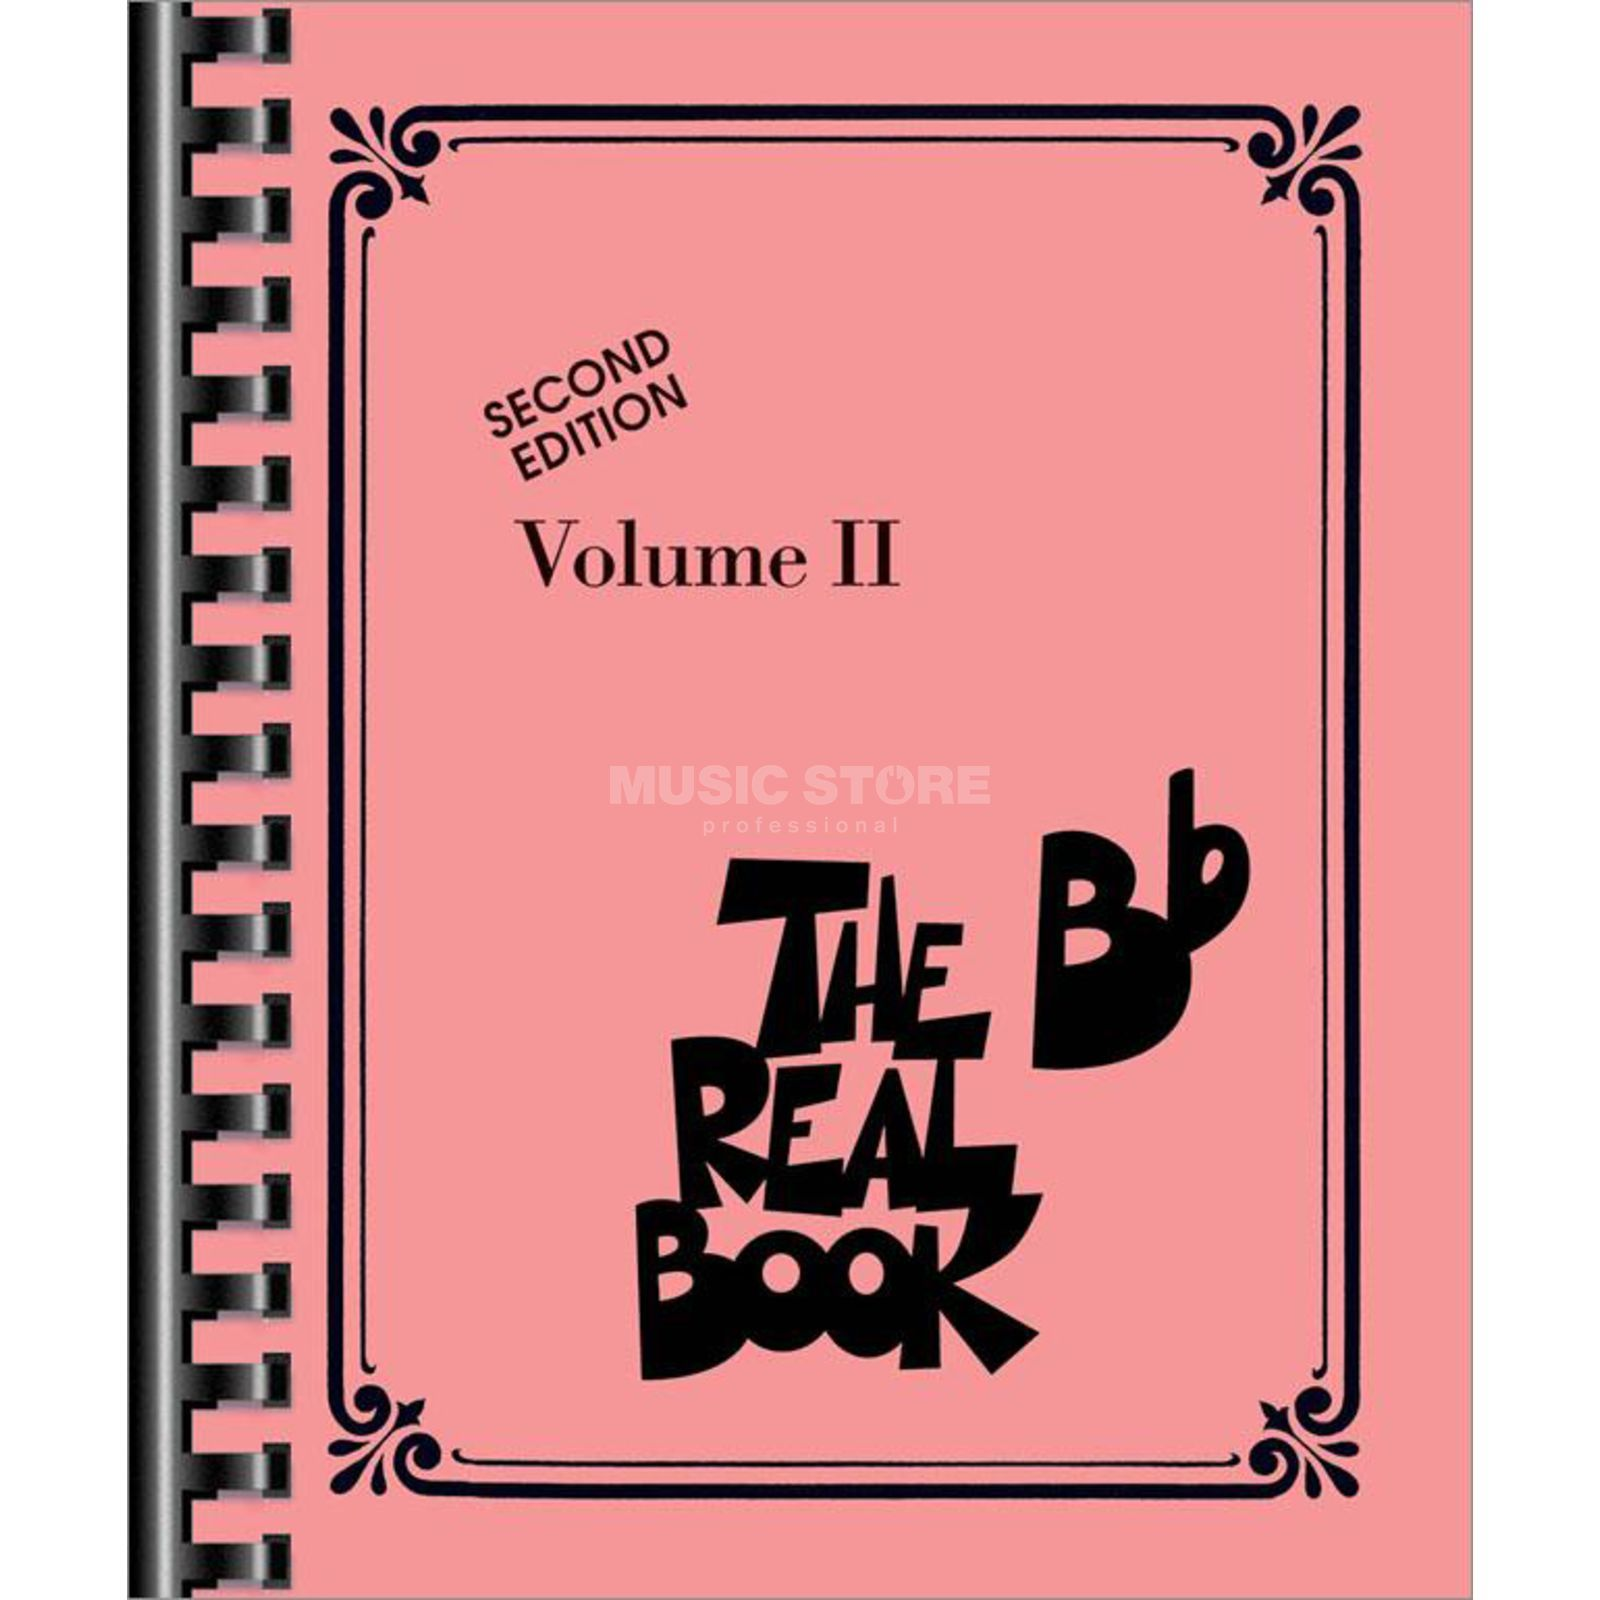 Hal Leonard The Real Book: Volume II Bb Instrumente Produktbild